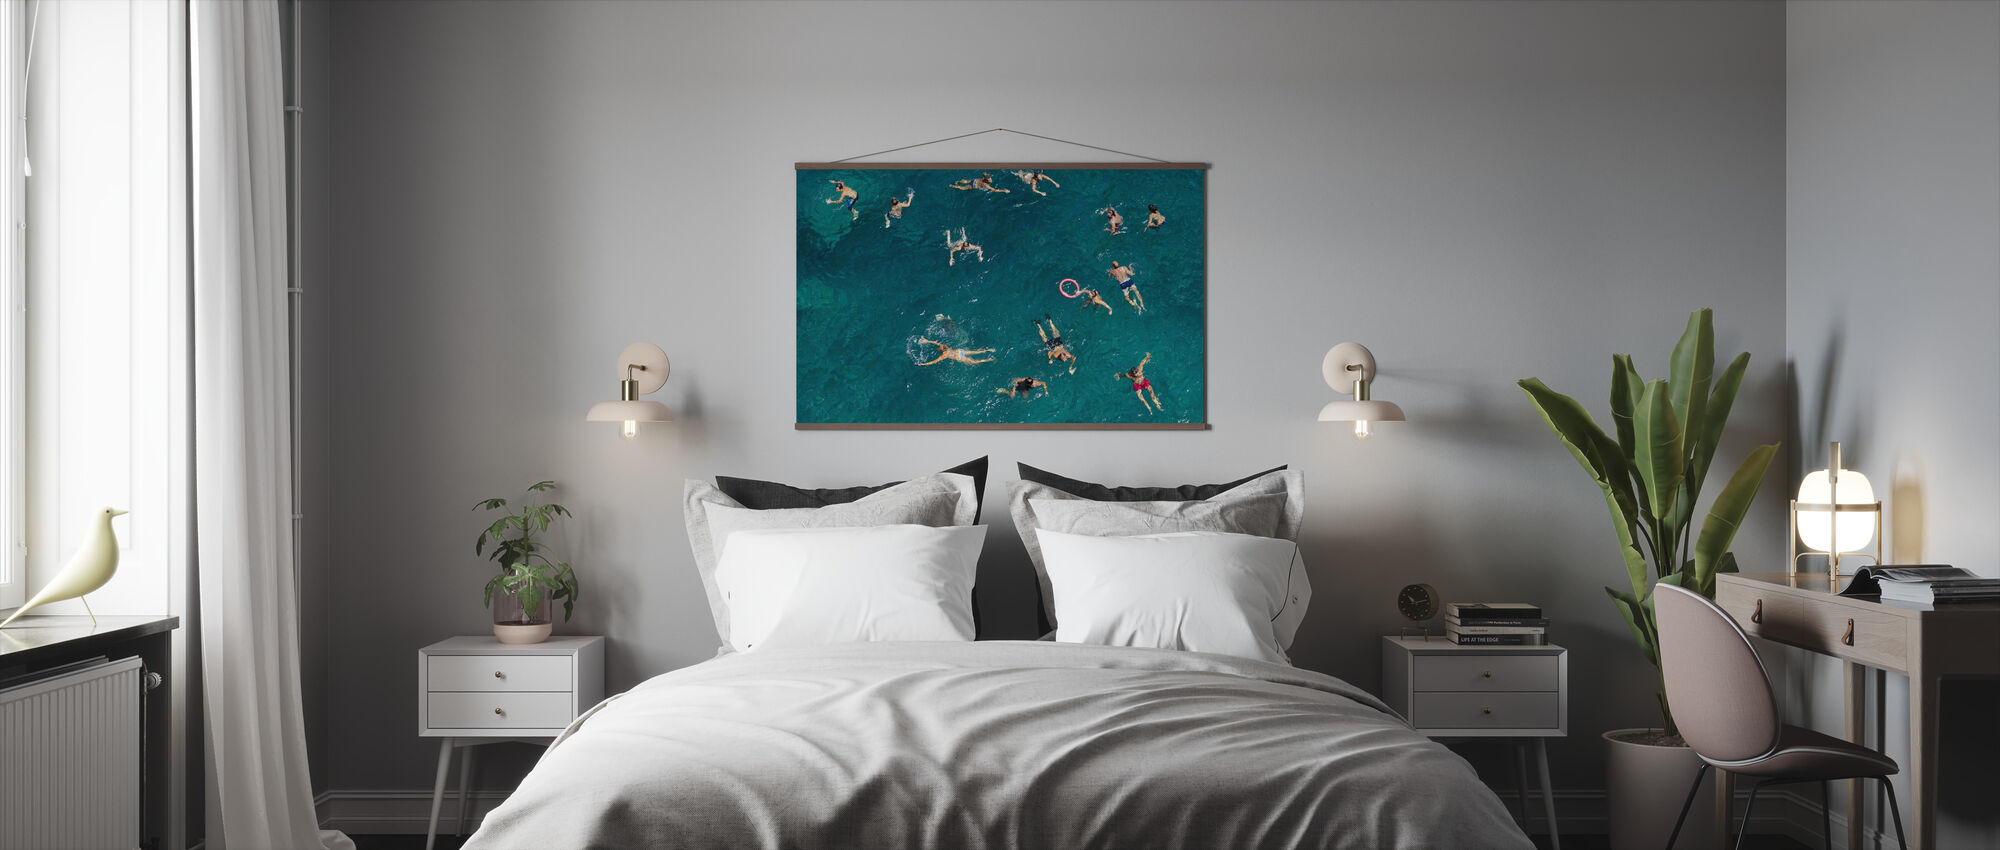 Swimming in Puglia Beach, Italy, Europe - Poster - Bedroom